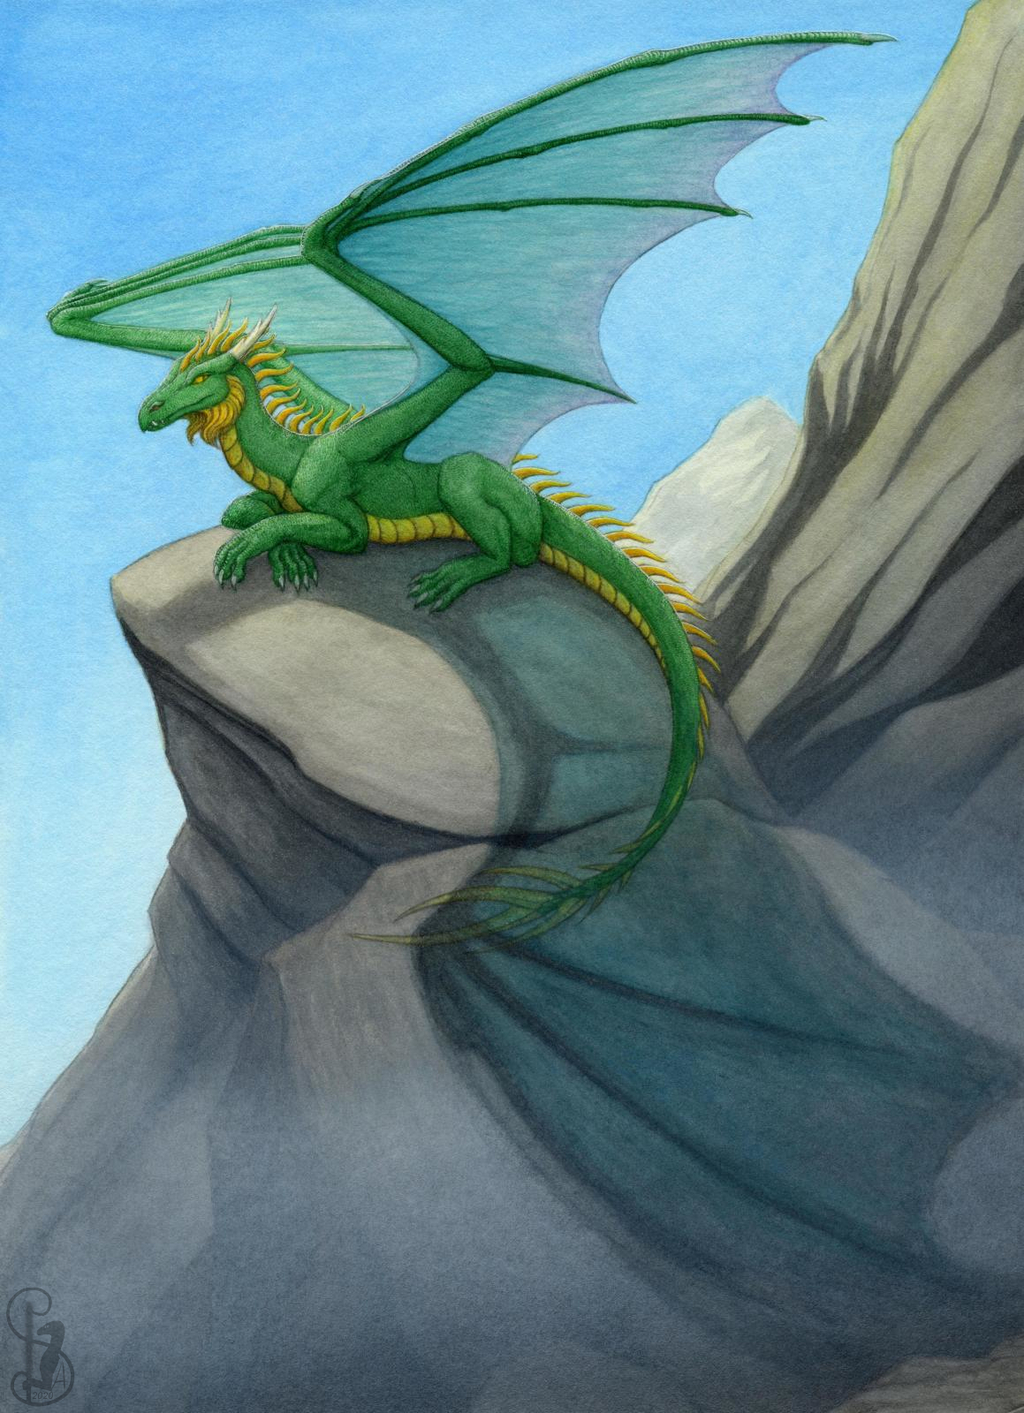 Most recent image: Green dragon